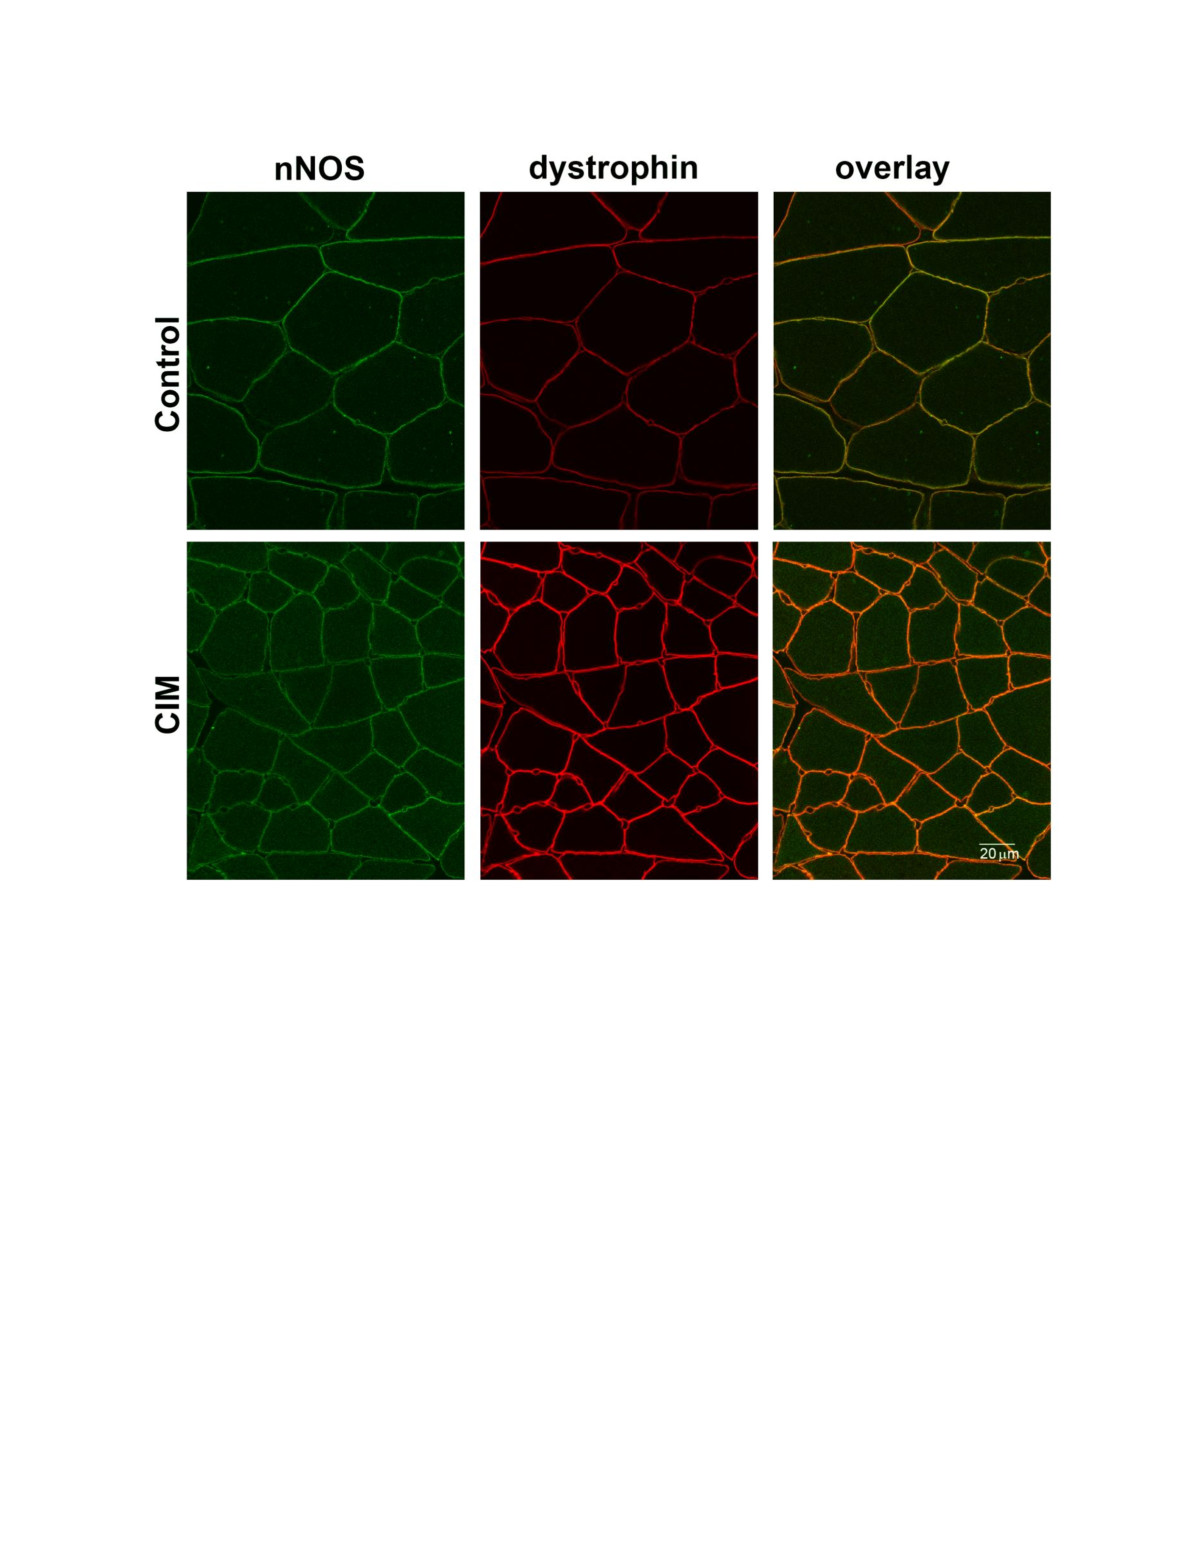 http://static-content.springer.com/image/art%3A10.1186%2F2044-5040-2-17/MediaObjects/13395_2012_Article_50_Fig6_HTML.jpg